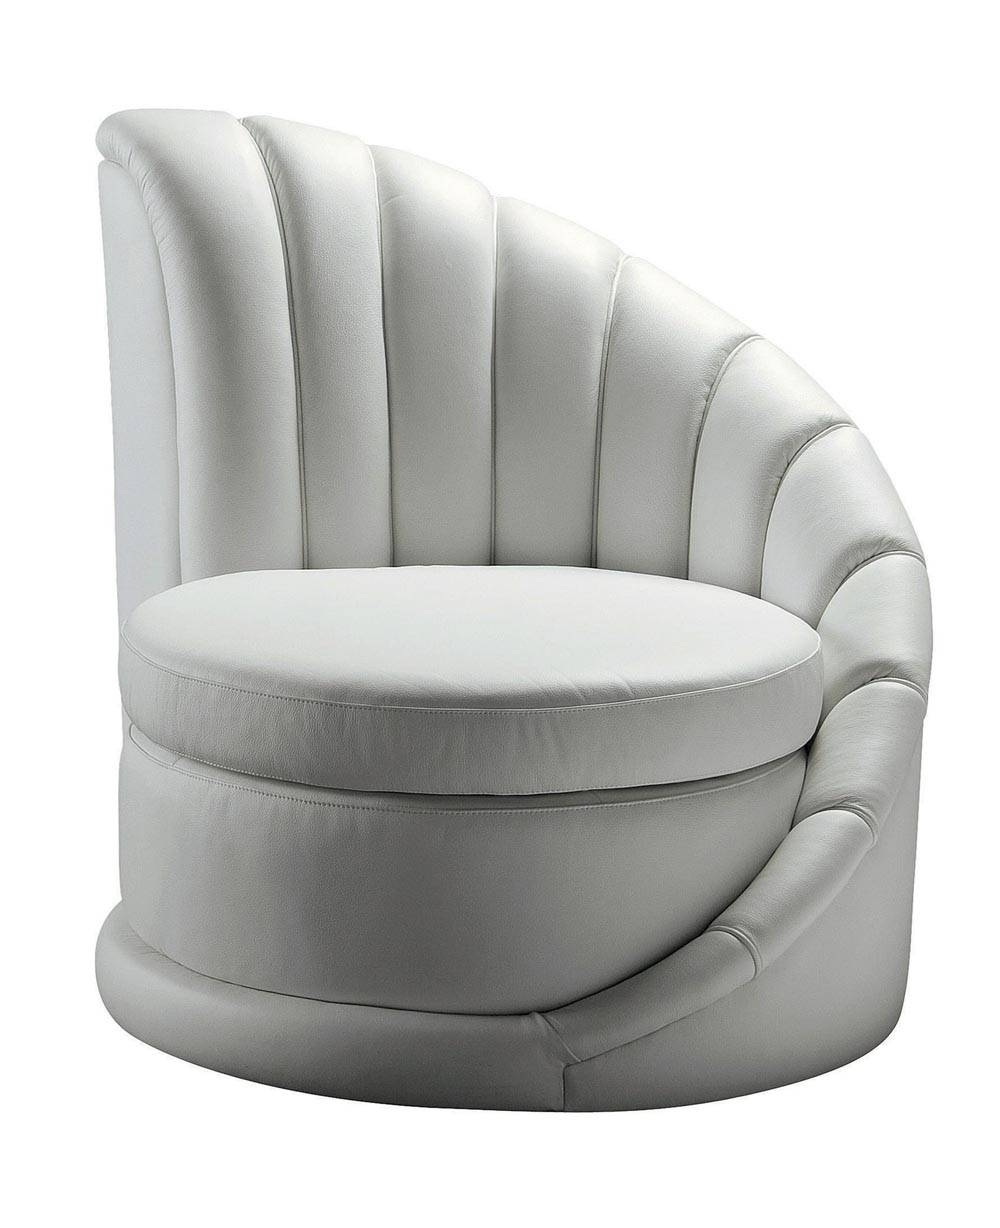 Small Single Living Room Chairs. Single Chairs For Living Room for Round Sofa Chair Living Room Furniture (Image 20 of 30)